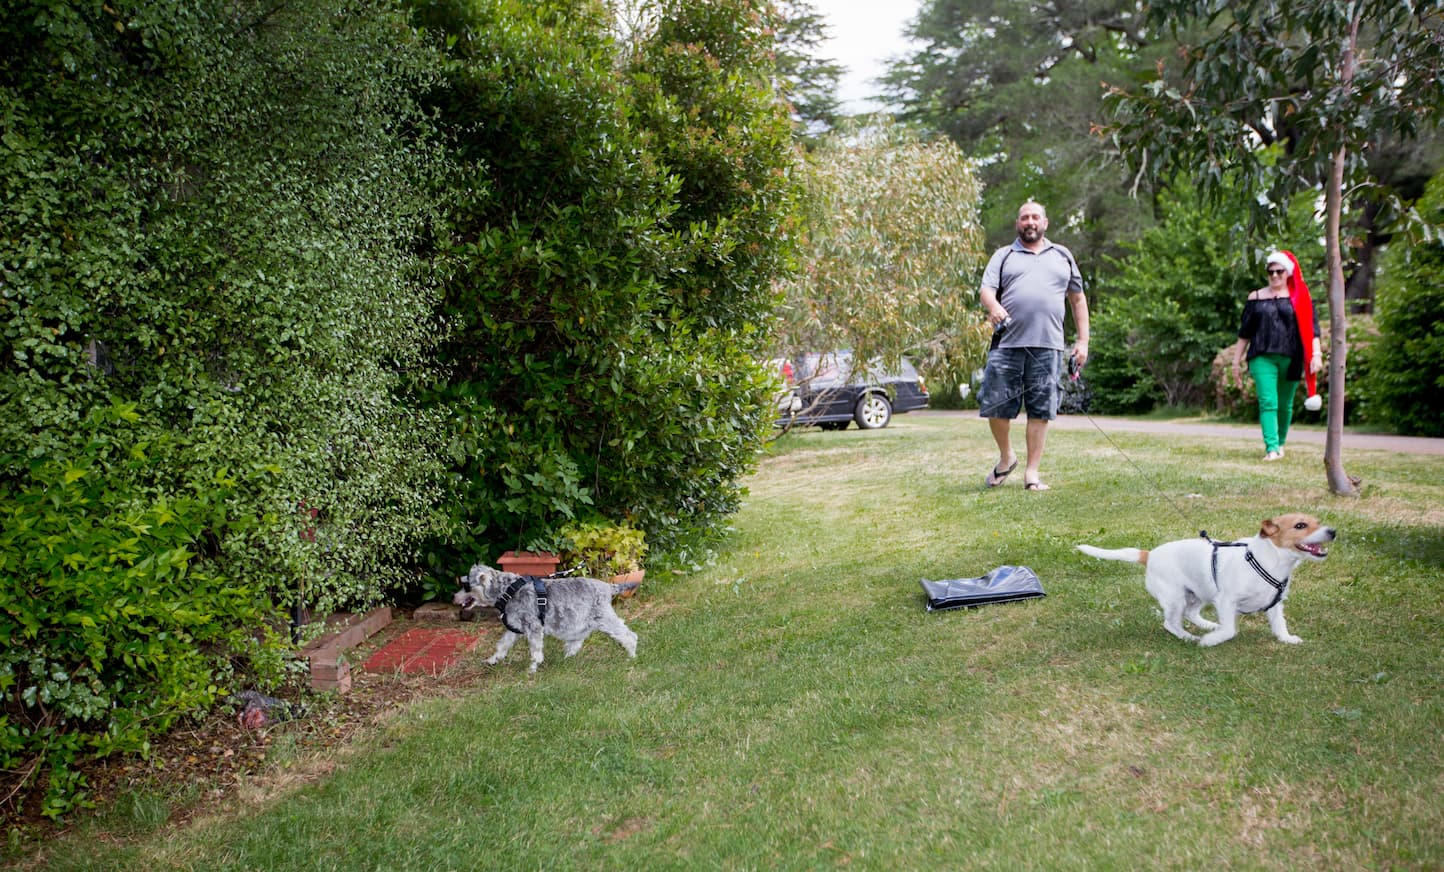 Daylesford Holiday Park Camping Family Fun Dog Friendly